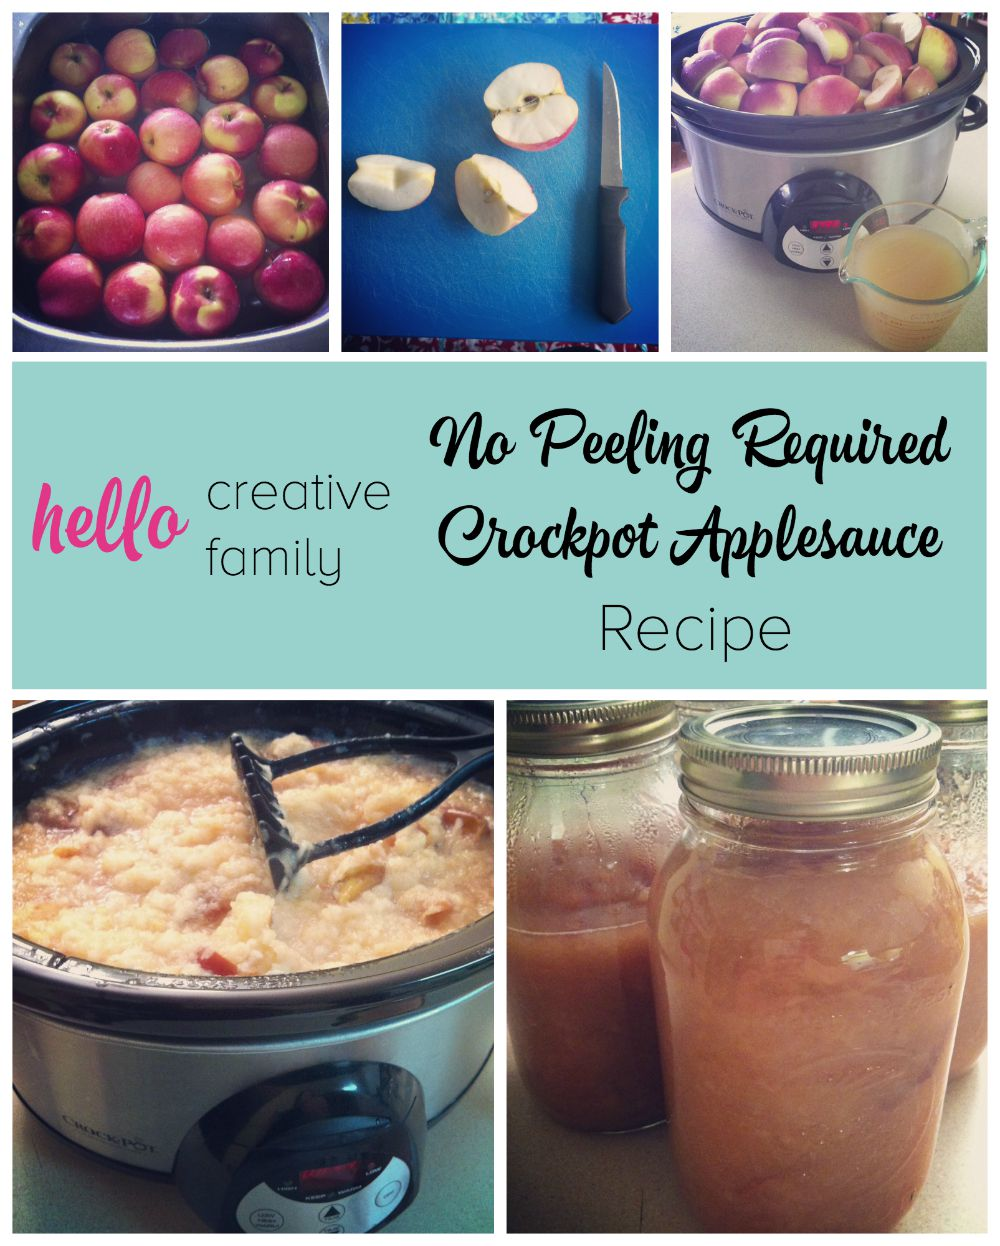 Everyone knows the worst part of making applesauce is peeling the apples. Not with this recipe! No Peeling Required Crockpot Applesauce Recipe